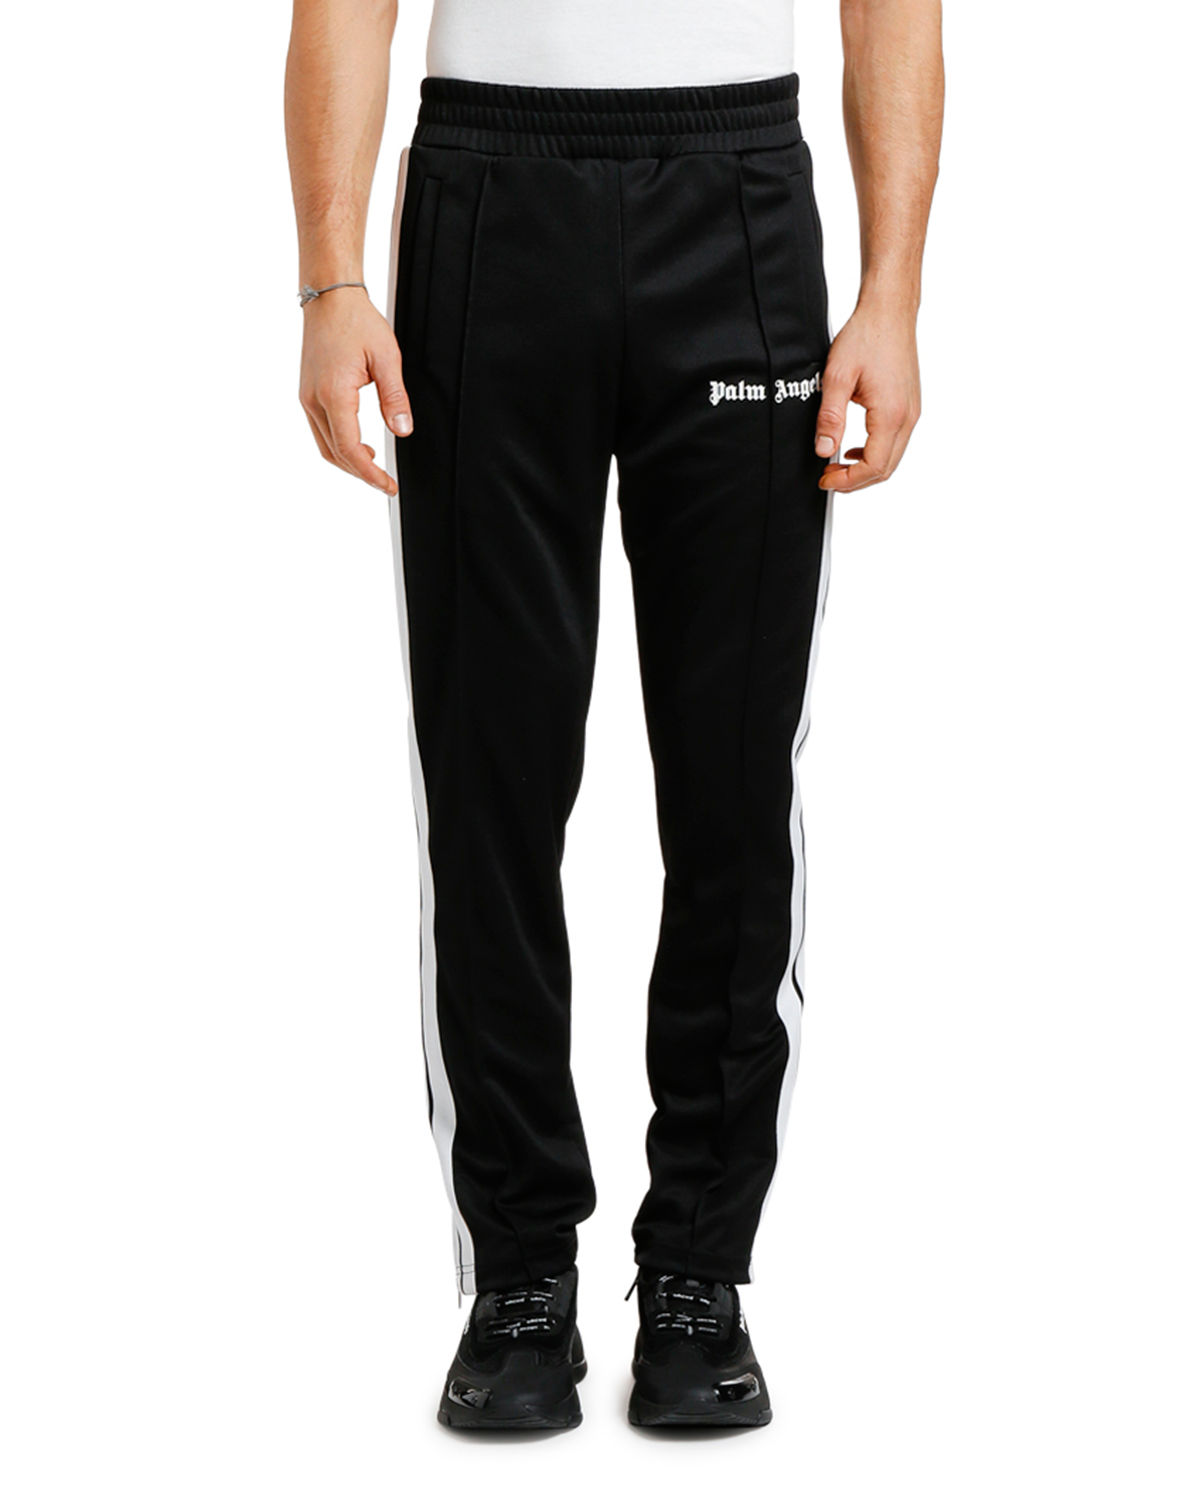 6481c9a3 Palm Angels Men's Classic Track Pants In Black/White. SIZE & FIT INFORMATION